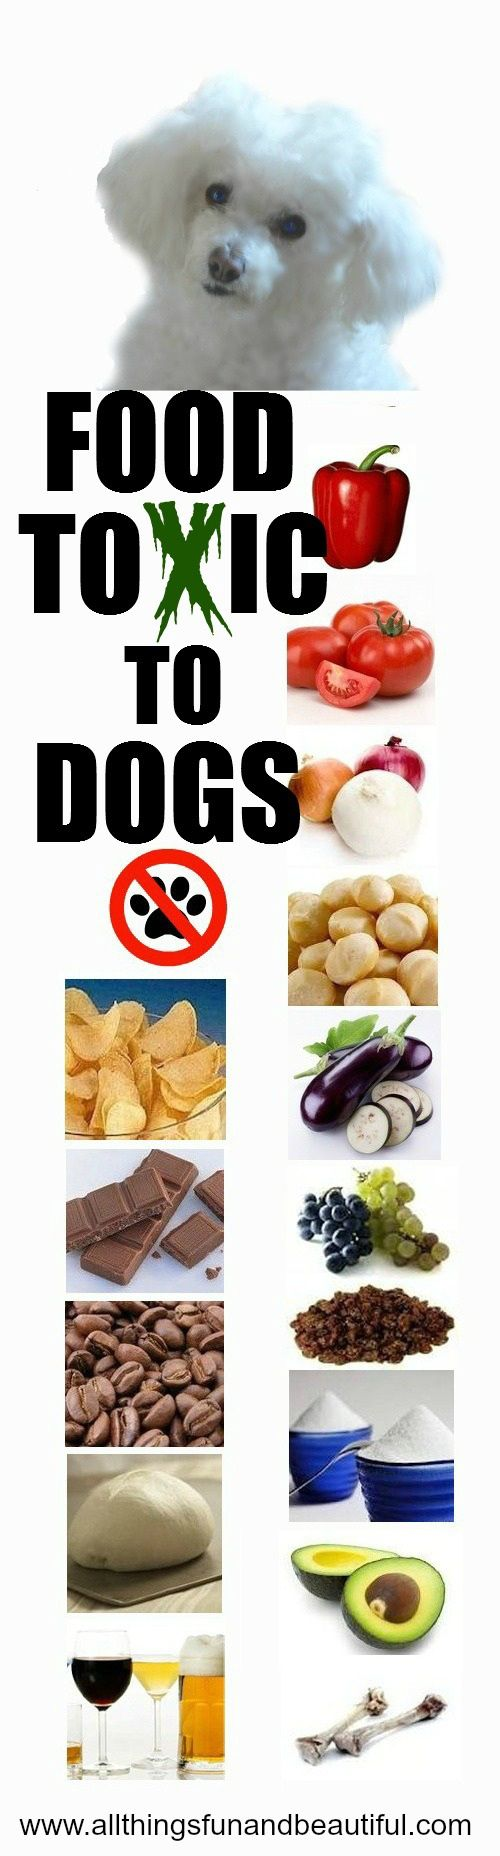 What food is harmful and toxic to dogs???